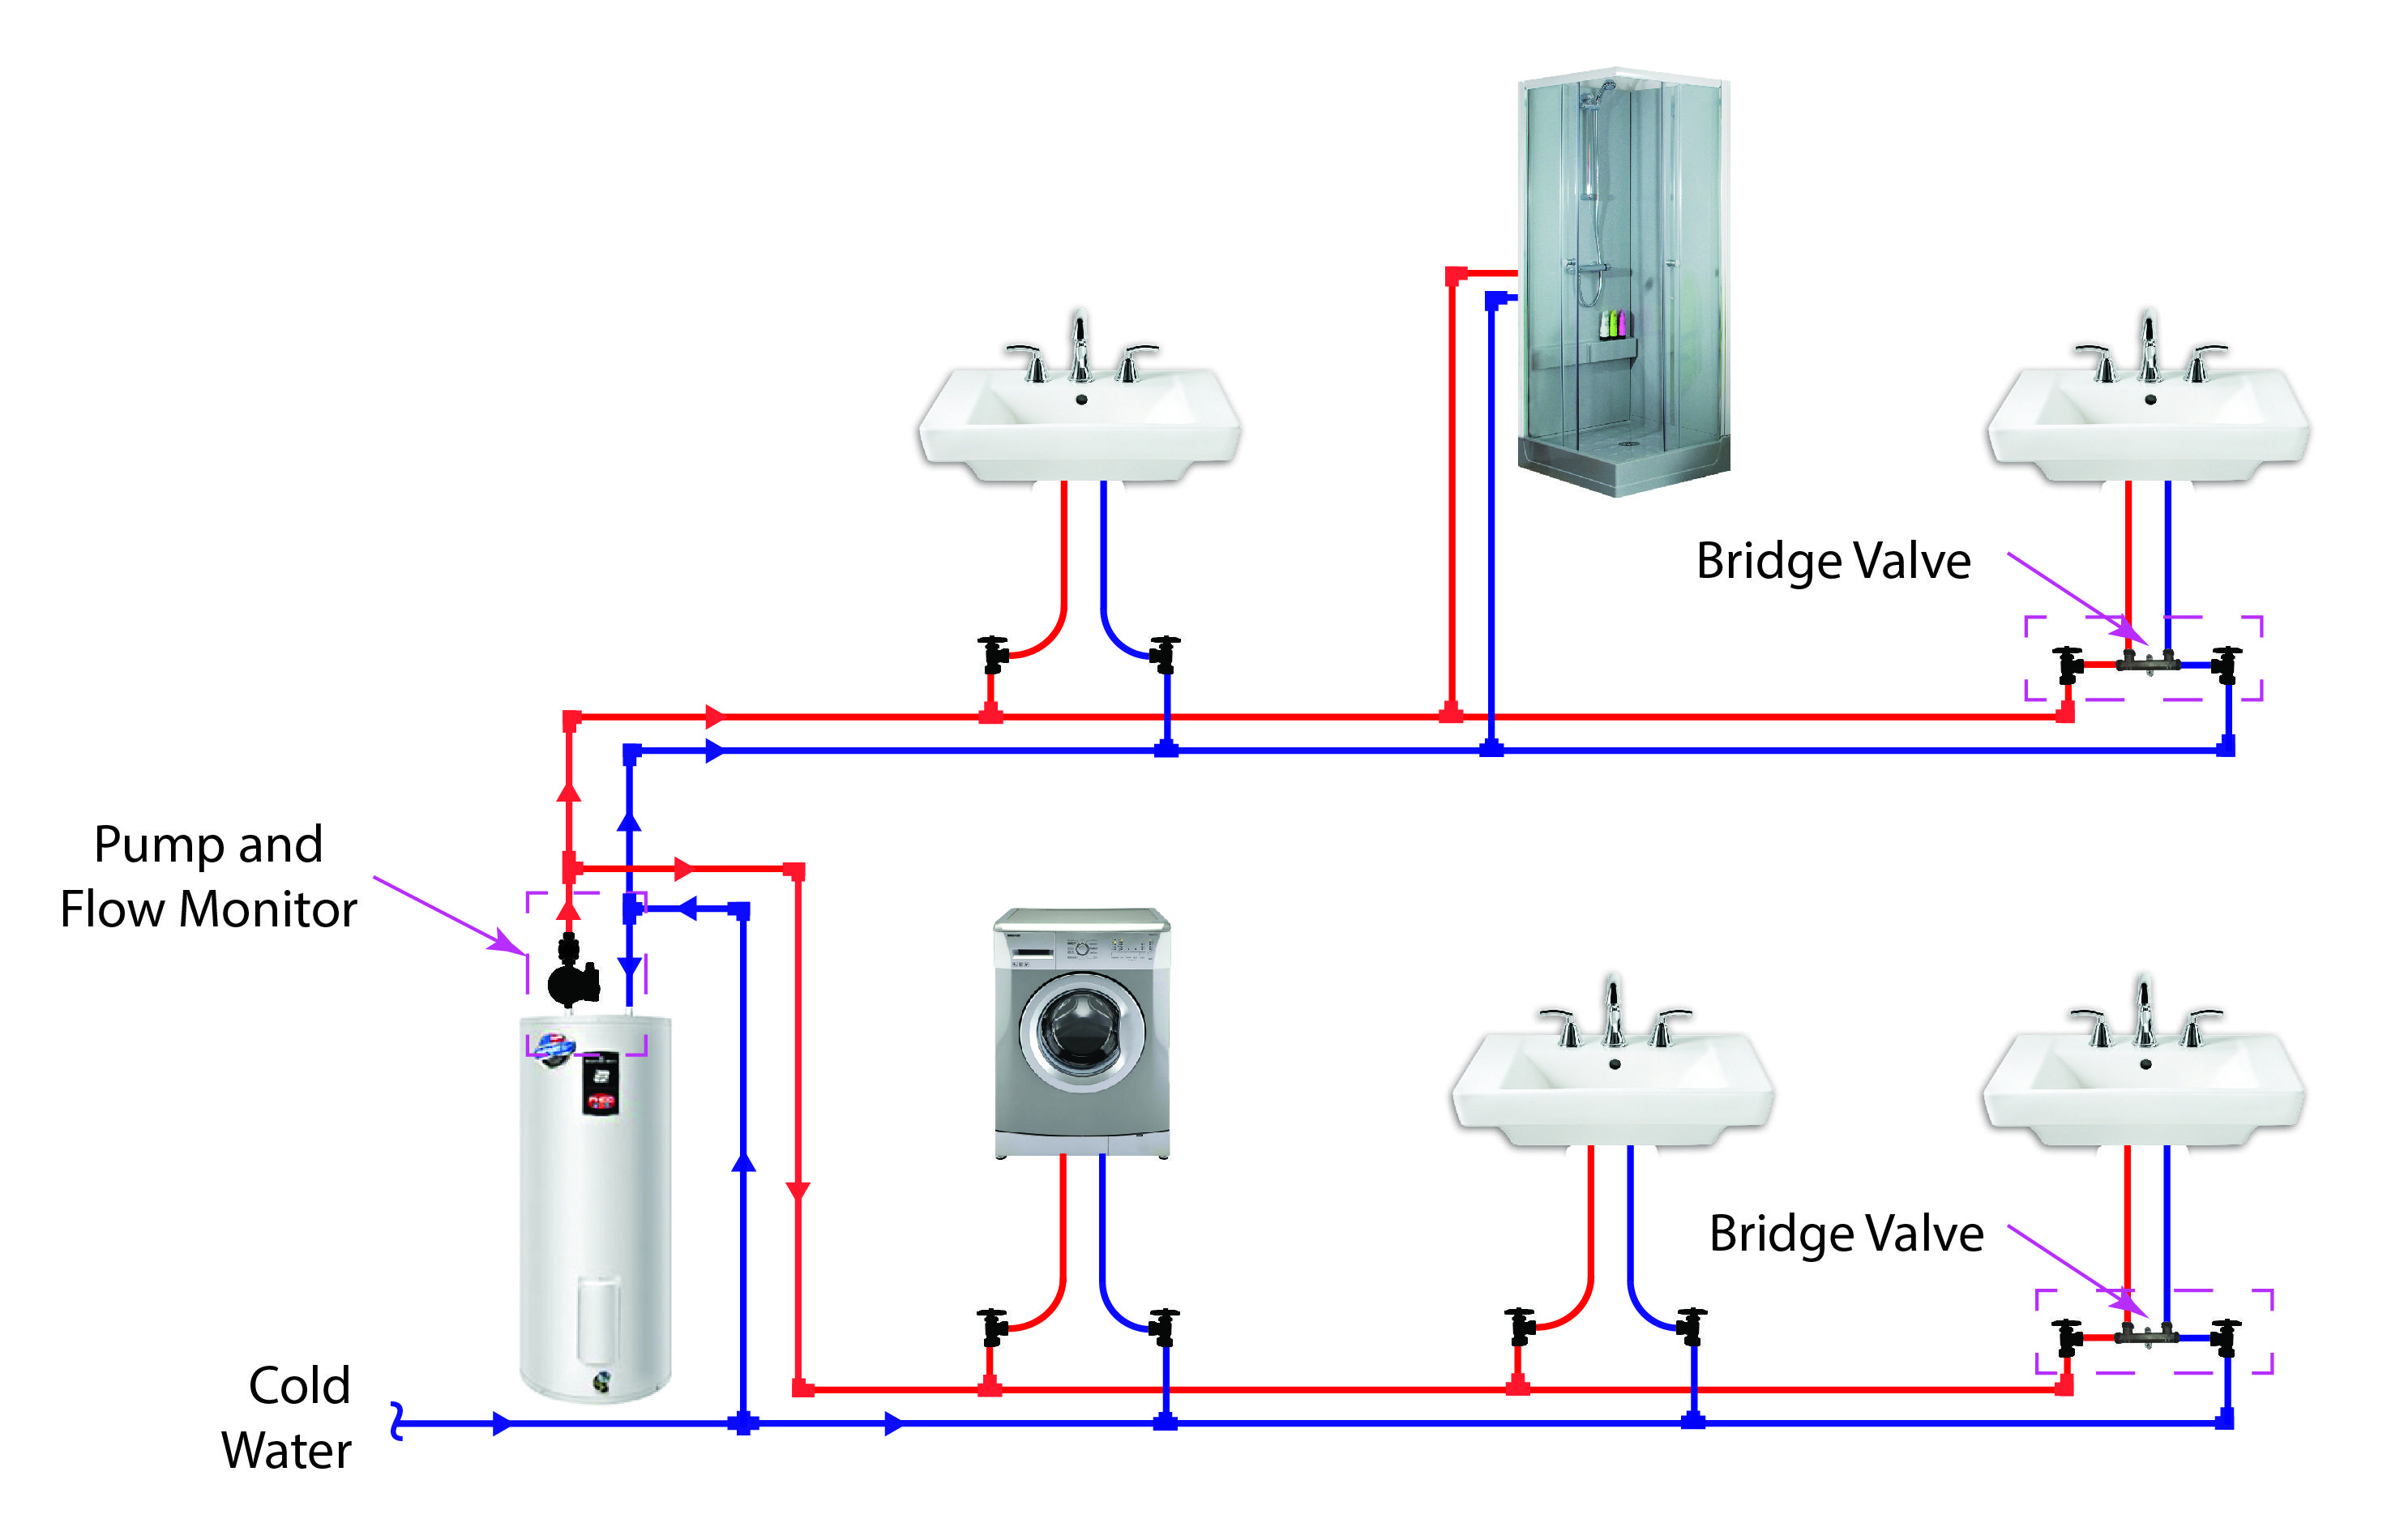 Water heater plumbing diagram basic guide wiring diagram residential plumbing diagrams hot water circulation rh fasterhotwater com indirect water heater piping diagrams dual water ccuart